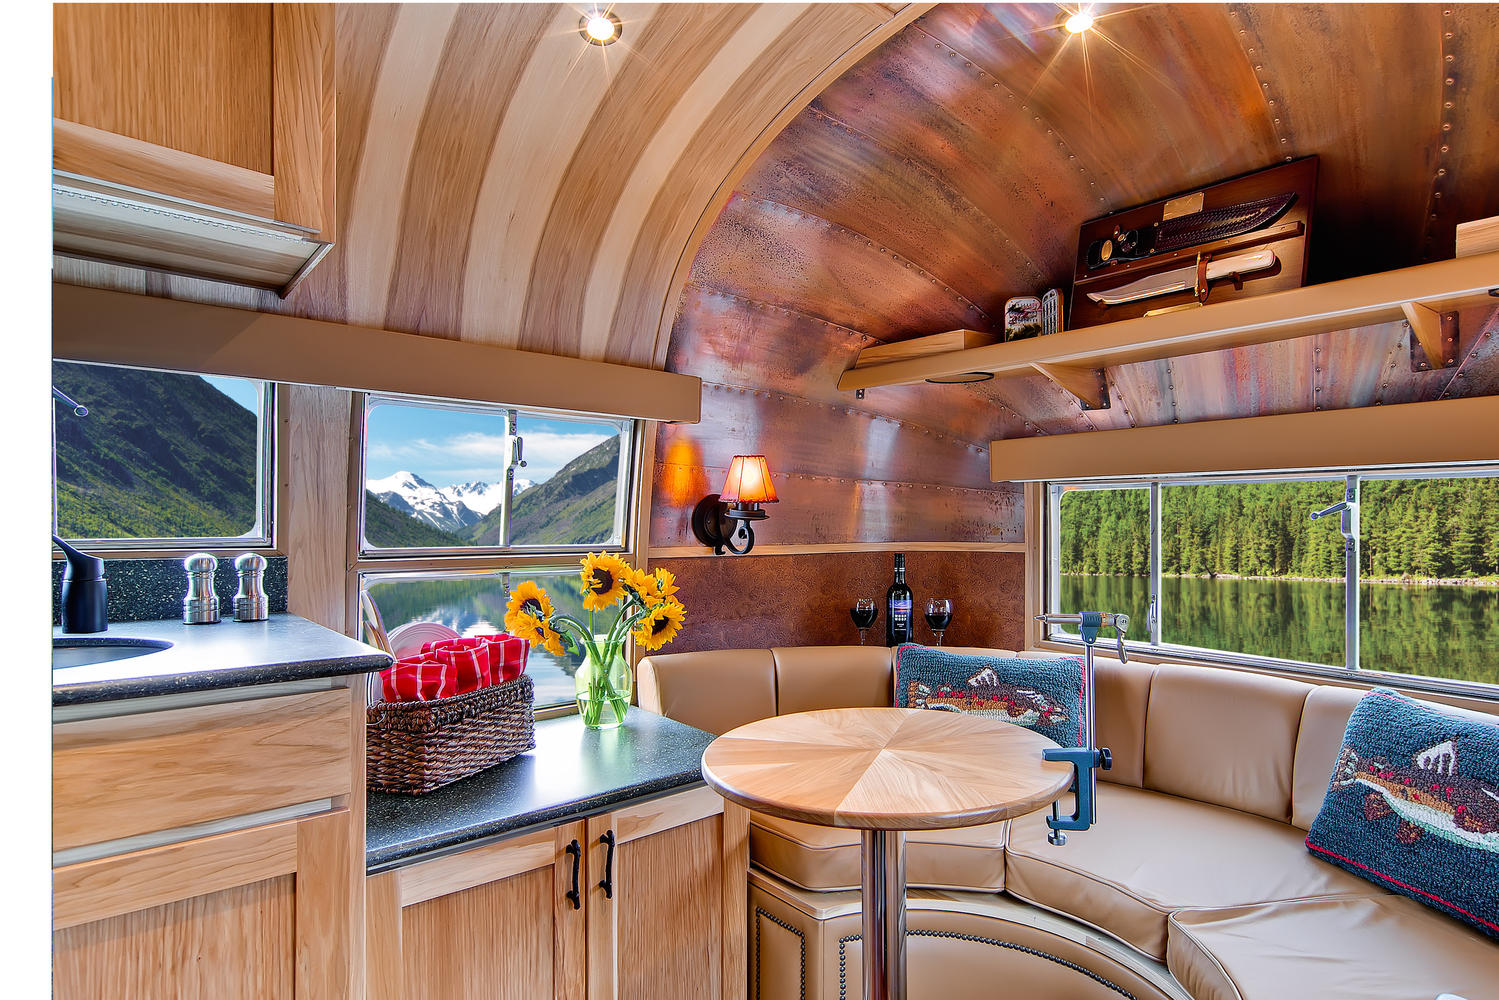 Click image for larger version  Name:airstream restoration.jpg Views:90 Size:350.9 KB ID:198330